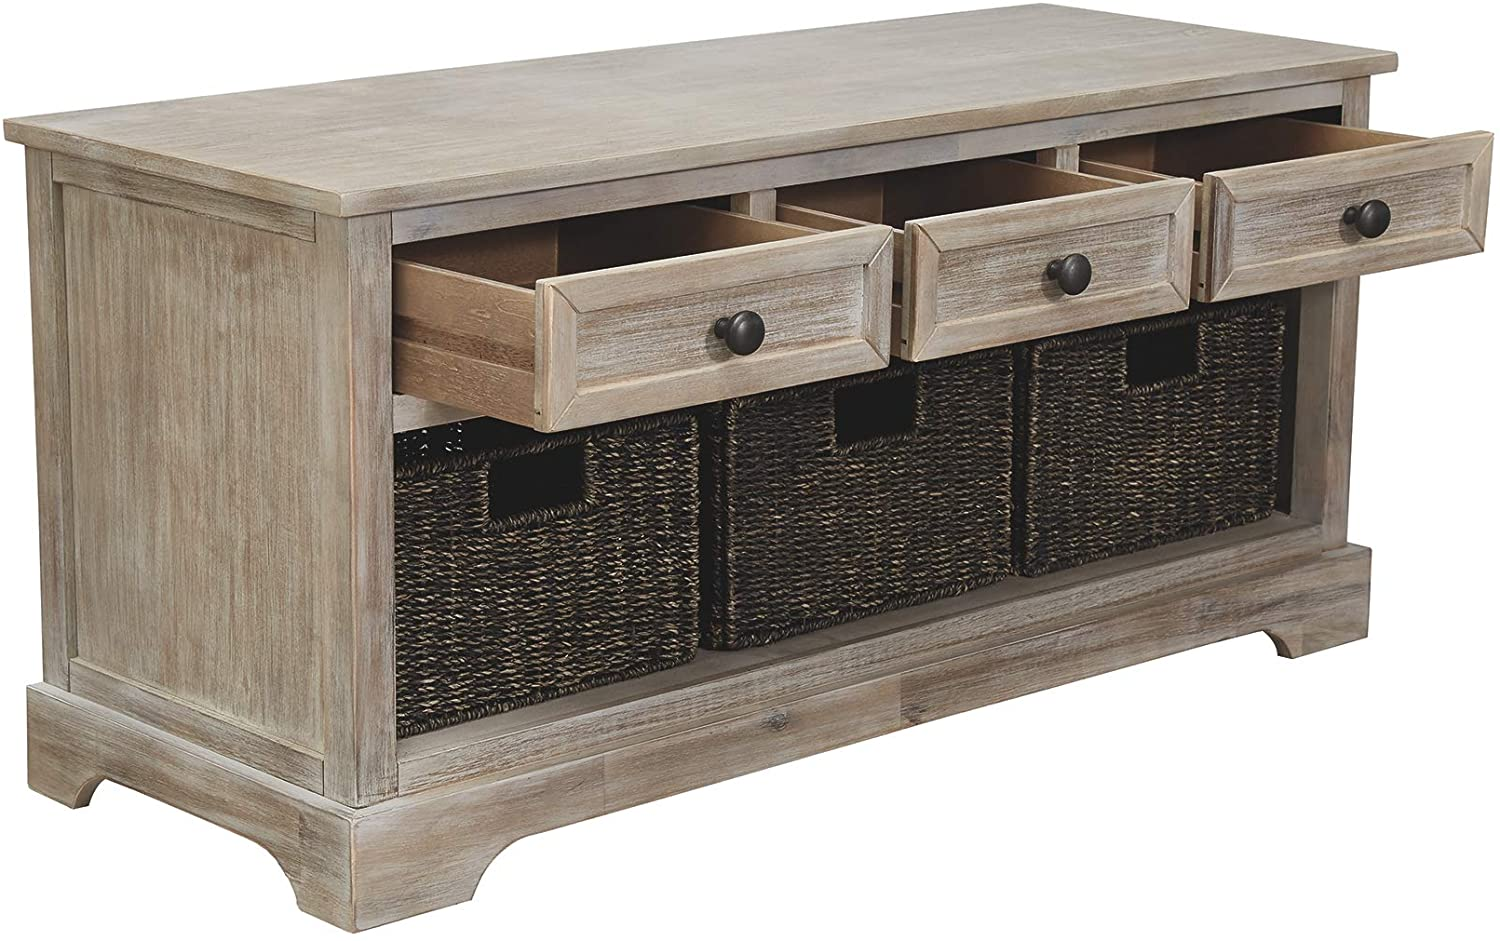 2 Woven Baskets /& 2 Drawers Signature Design by Ashley Light Brown Oslember Storage Bench